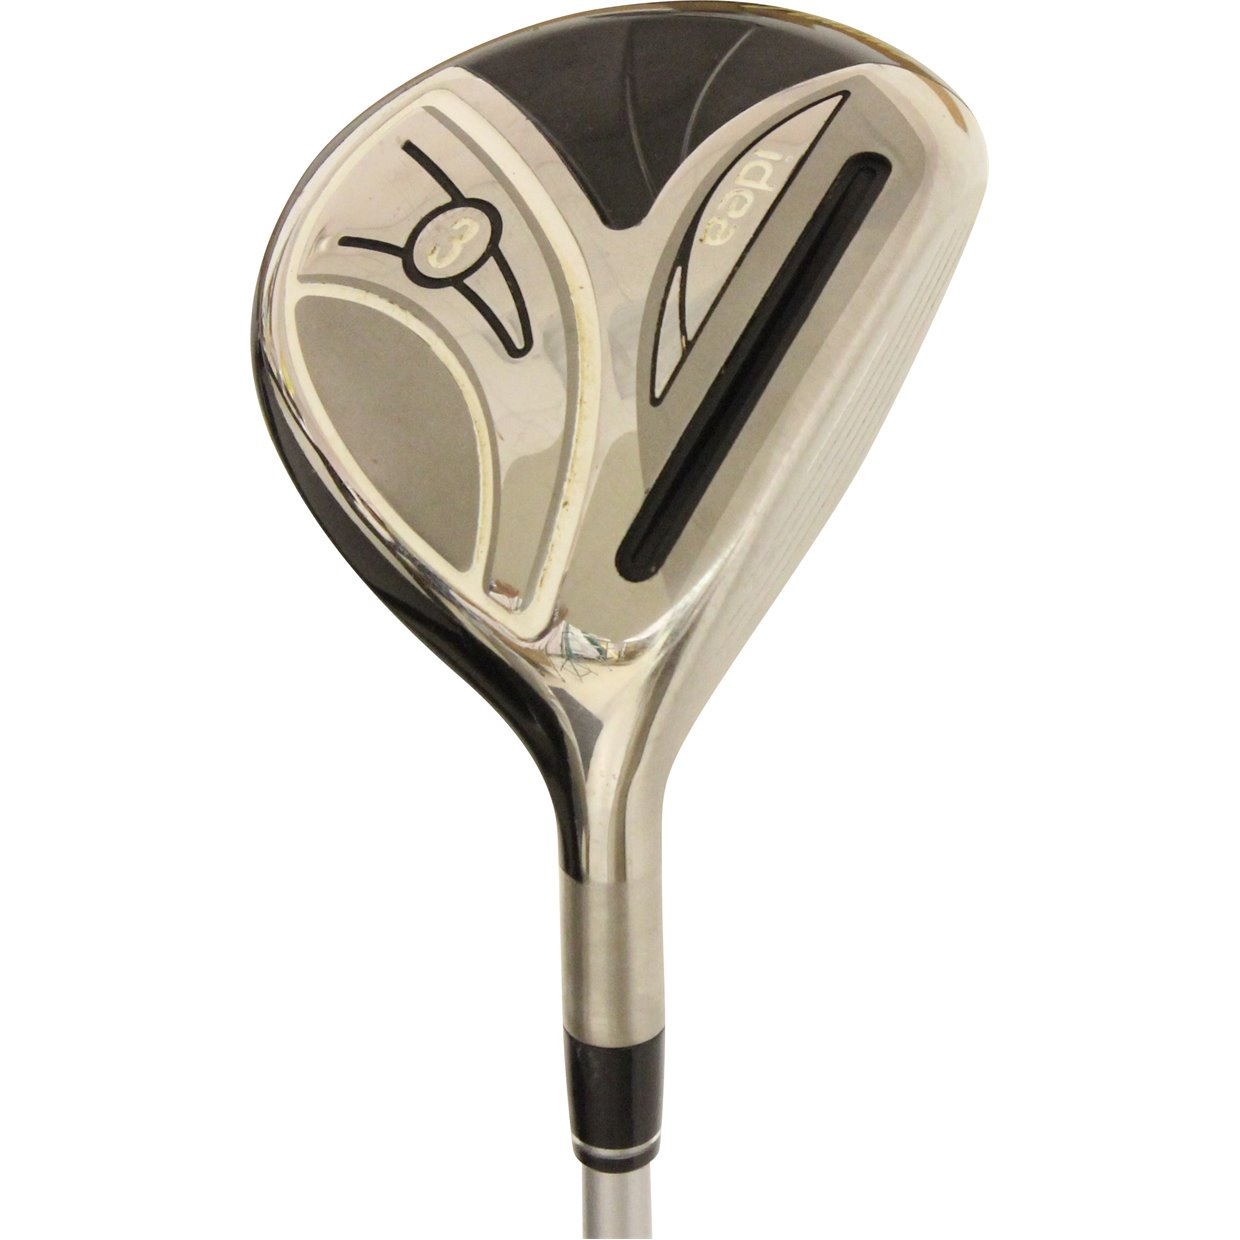 Used Ladies Golf Clubs >> Adams Idea Black Gold Fairway Wood 5 Wood 20 Degree Ladies Used Golf